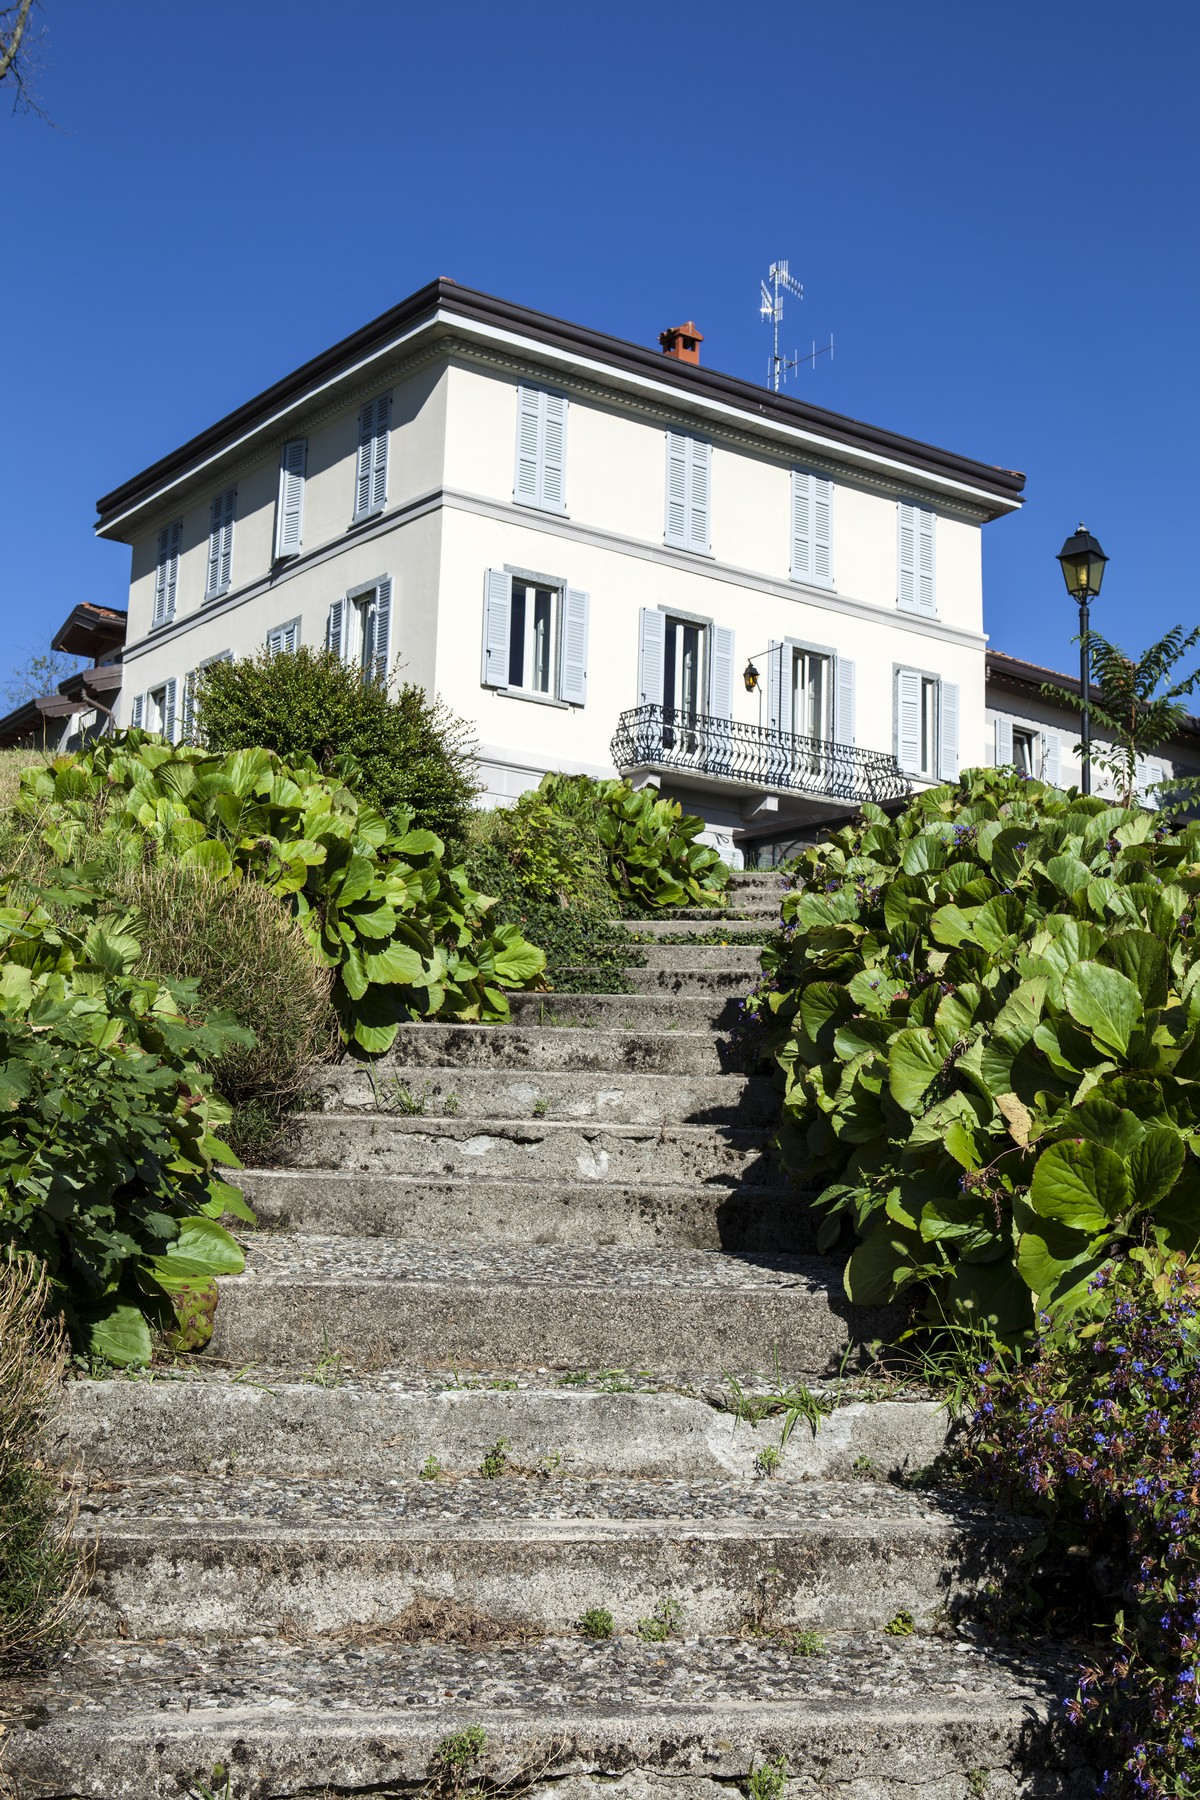 Additional photo for property listing at Wonderful apartment set in the luxurious villa Eros Via Cardano Como, Como 22100 Italien